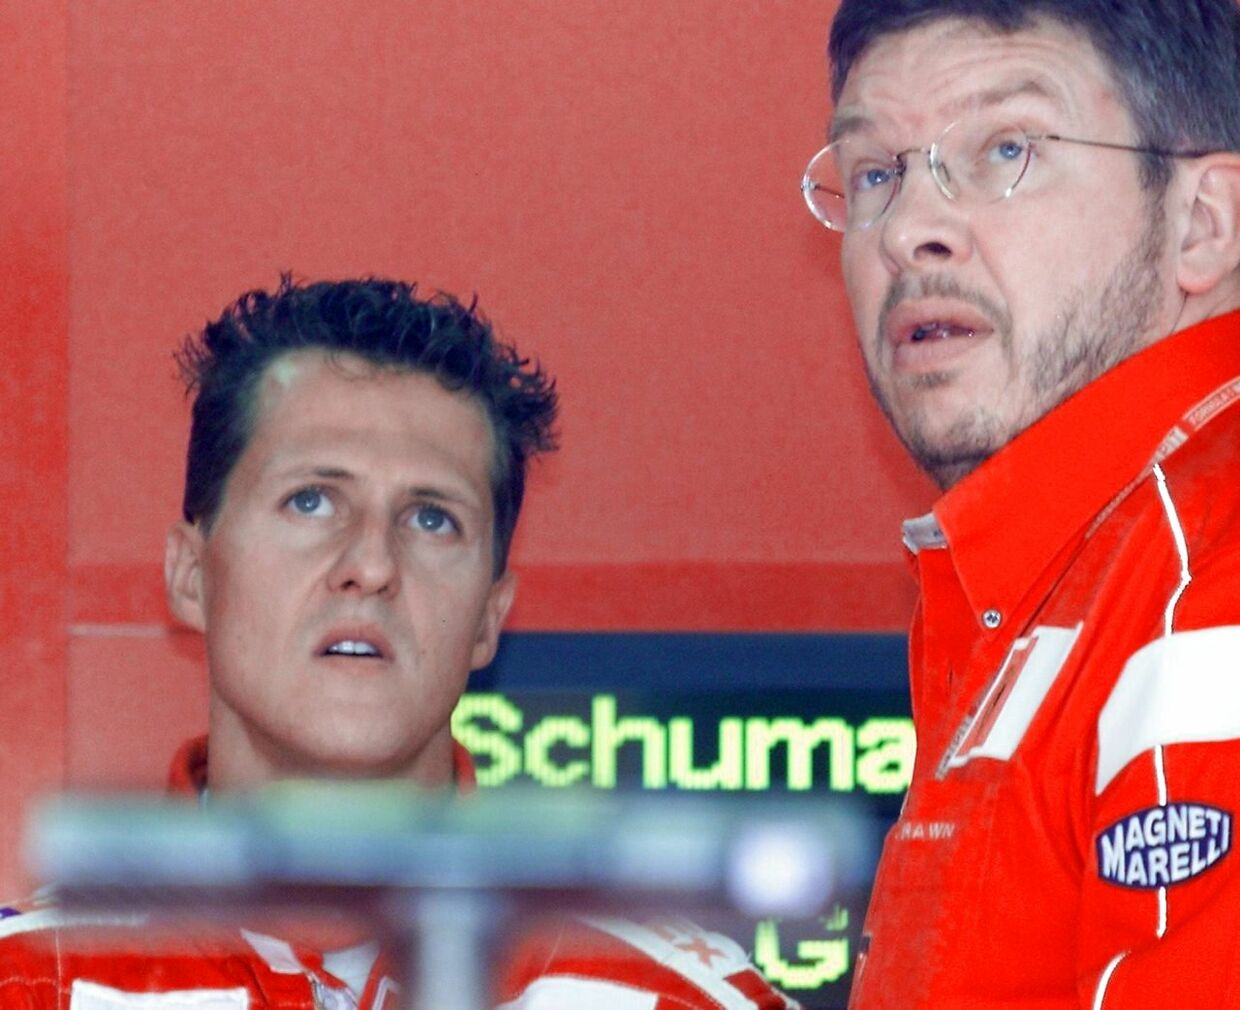 German Ferrari driver Michael schumacher (L) and his technical director Ross Brawn watch TV screen 30 June 2000 in the pits of the Magny-Cours racetrack, during the first free practice session, two days before the 86th French Formula One Grand Prix. (ELECTRONIC IMAGE) AFP PHOTO SAMIRA BOUHIN